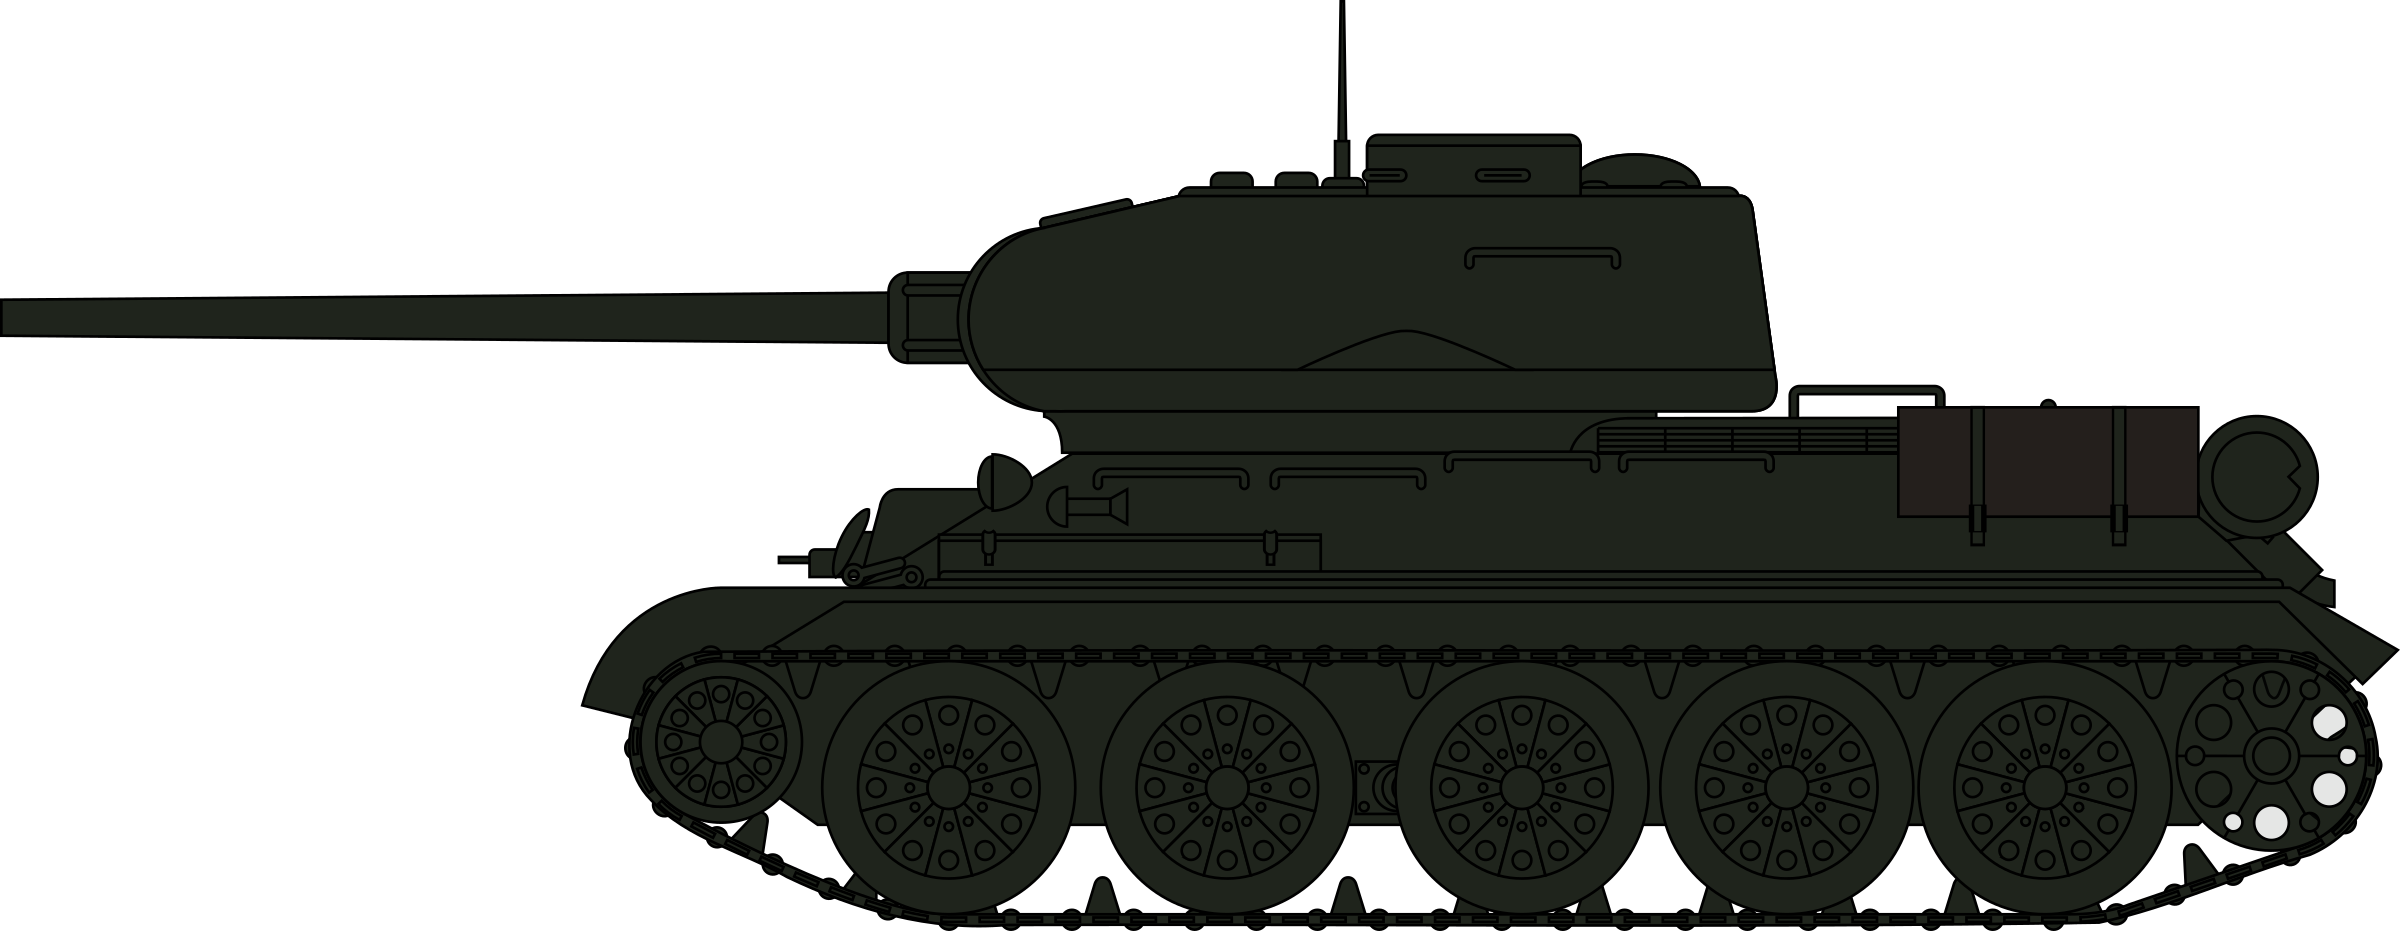 banner transparent Military svg free on. Tank clipart